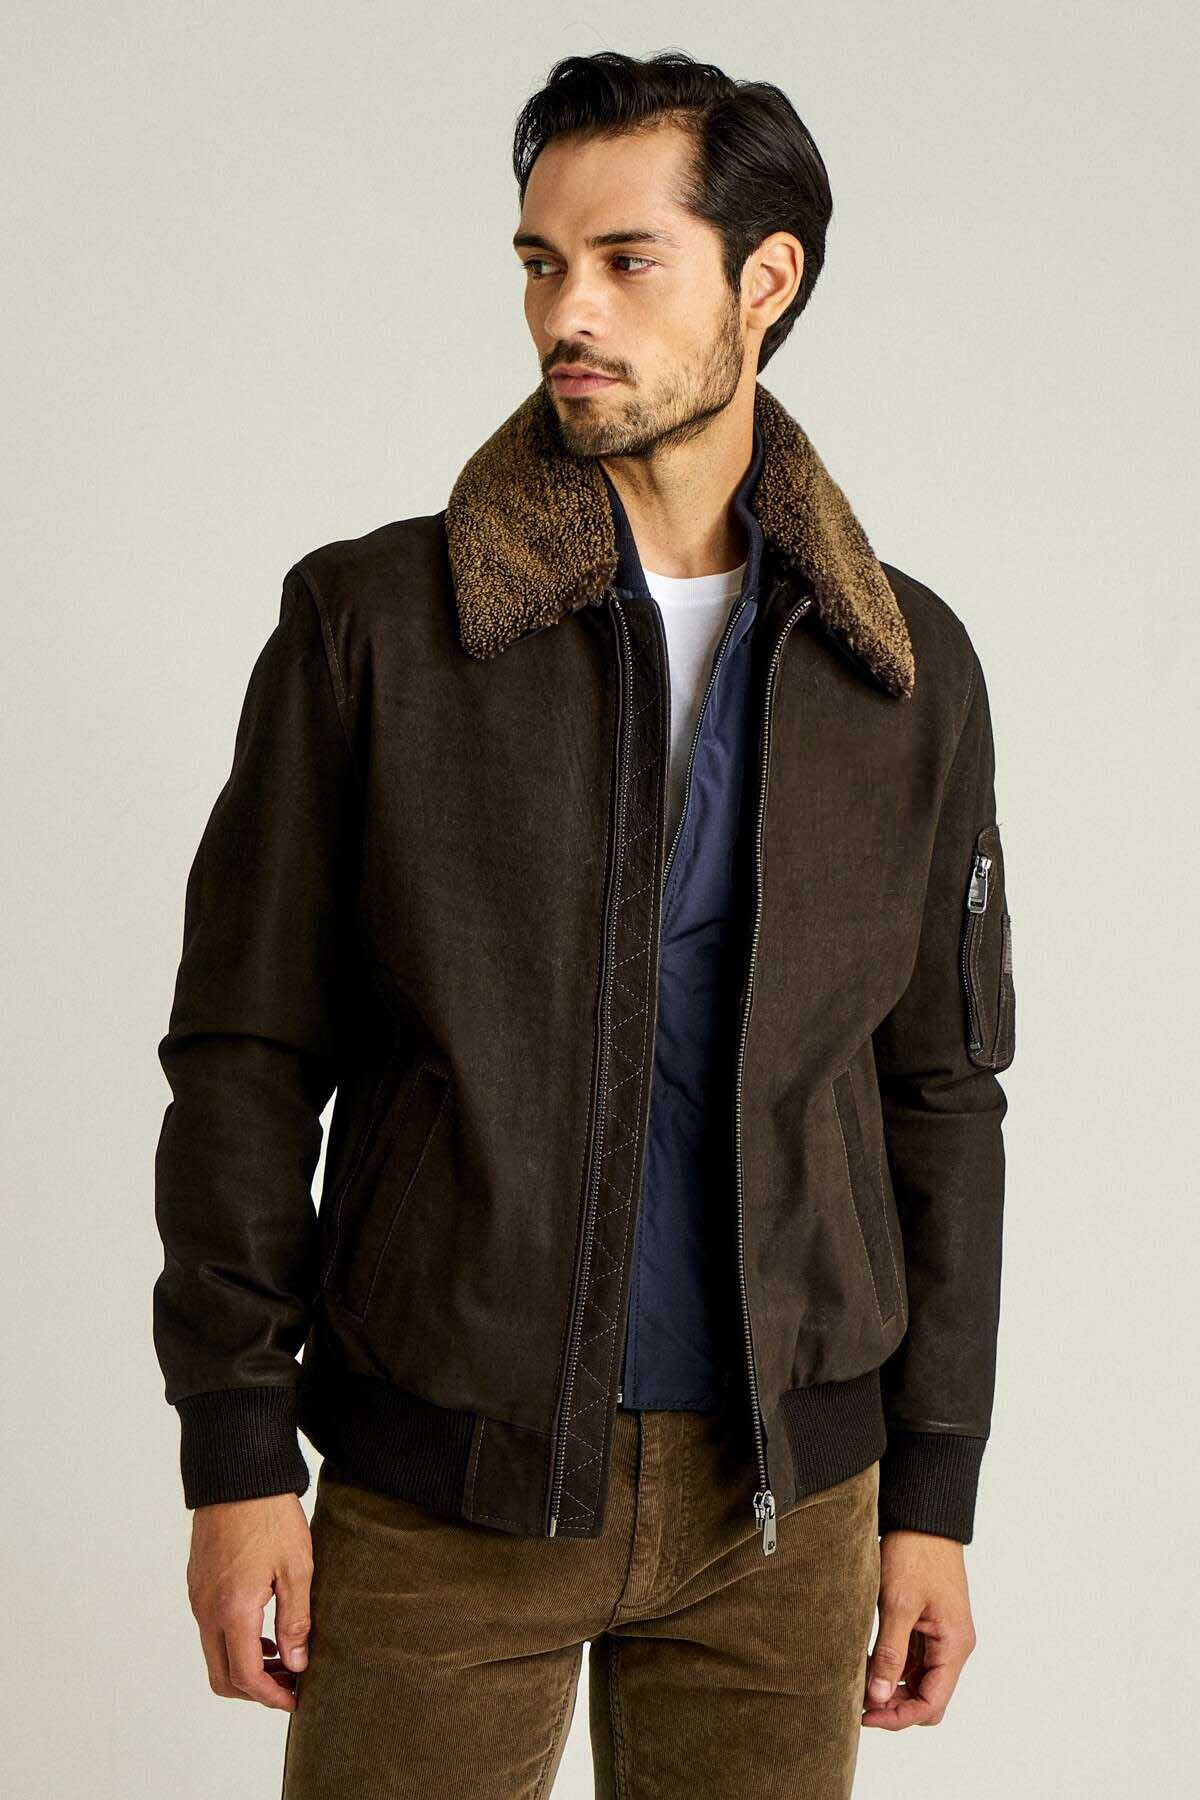 Men's Leather Bomber Jacket with Fur Collar - Brown